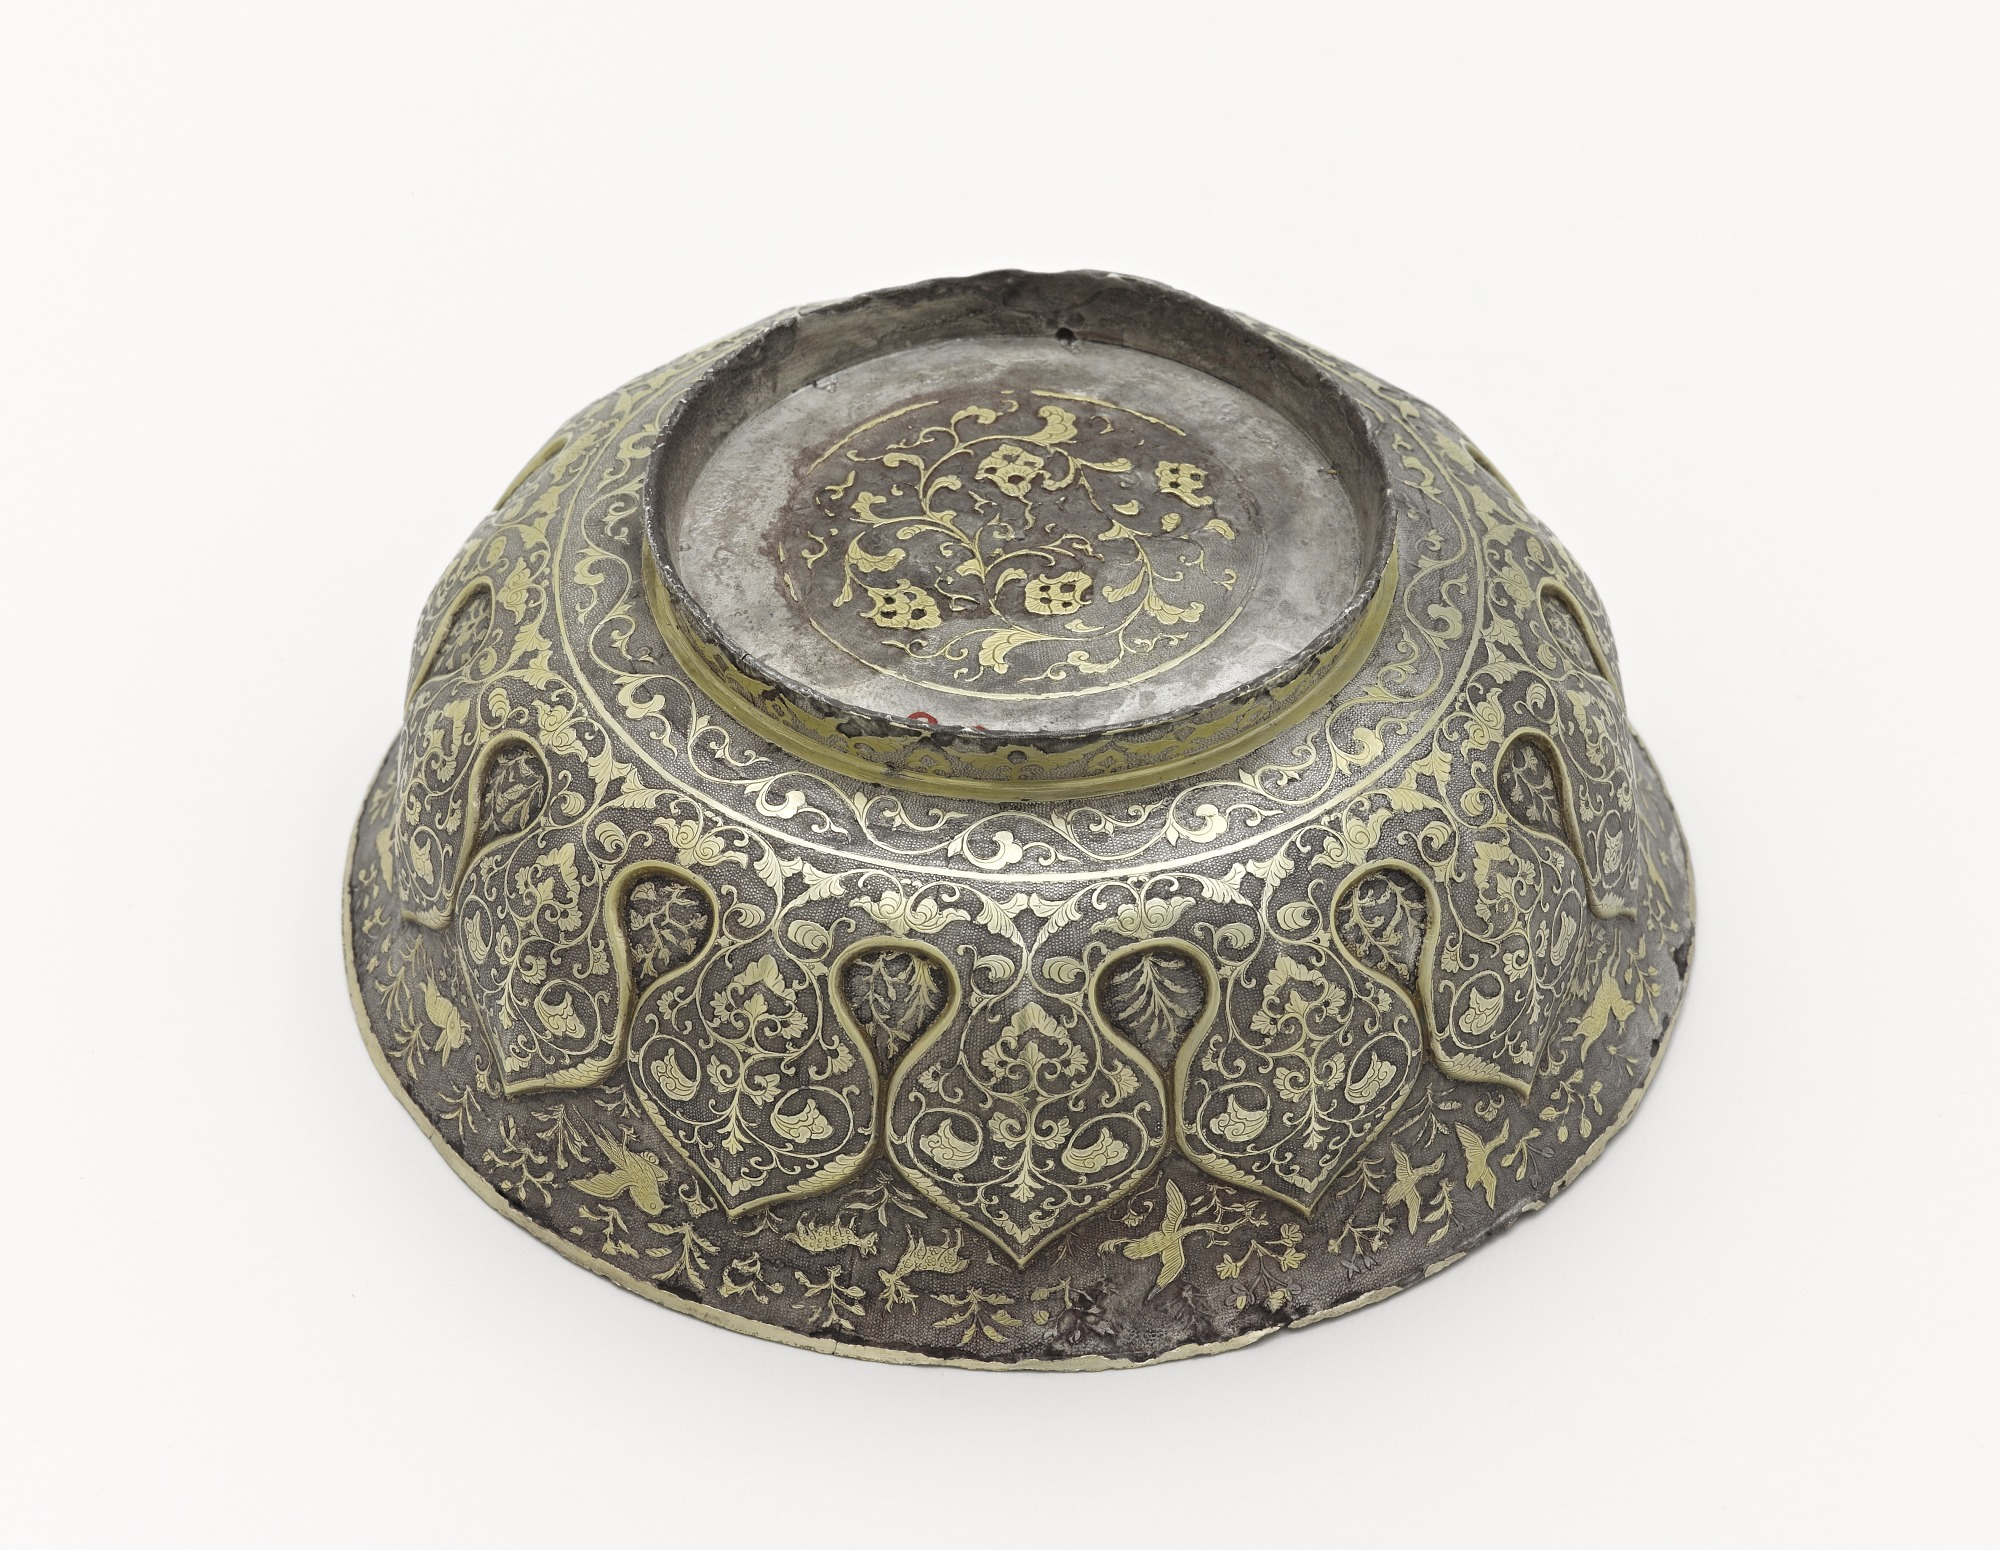 base: Lobed bowl with lotus petals, birds, animals, and floral scrolls